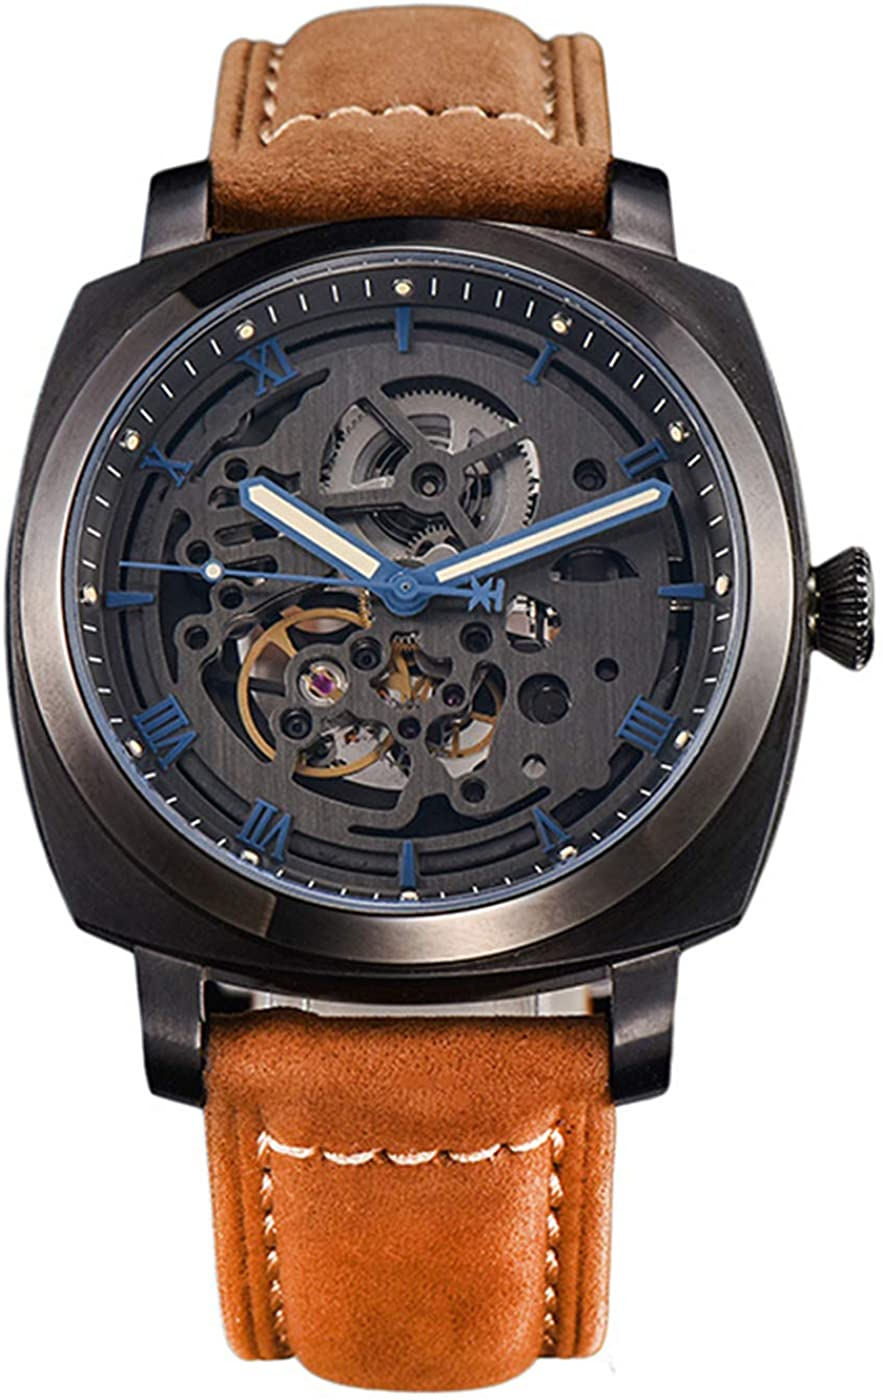 Seagull Movement Fully Hollow Automatic Mechanical Men's Watch Personality Trendy Men's Watch See-Through Back